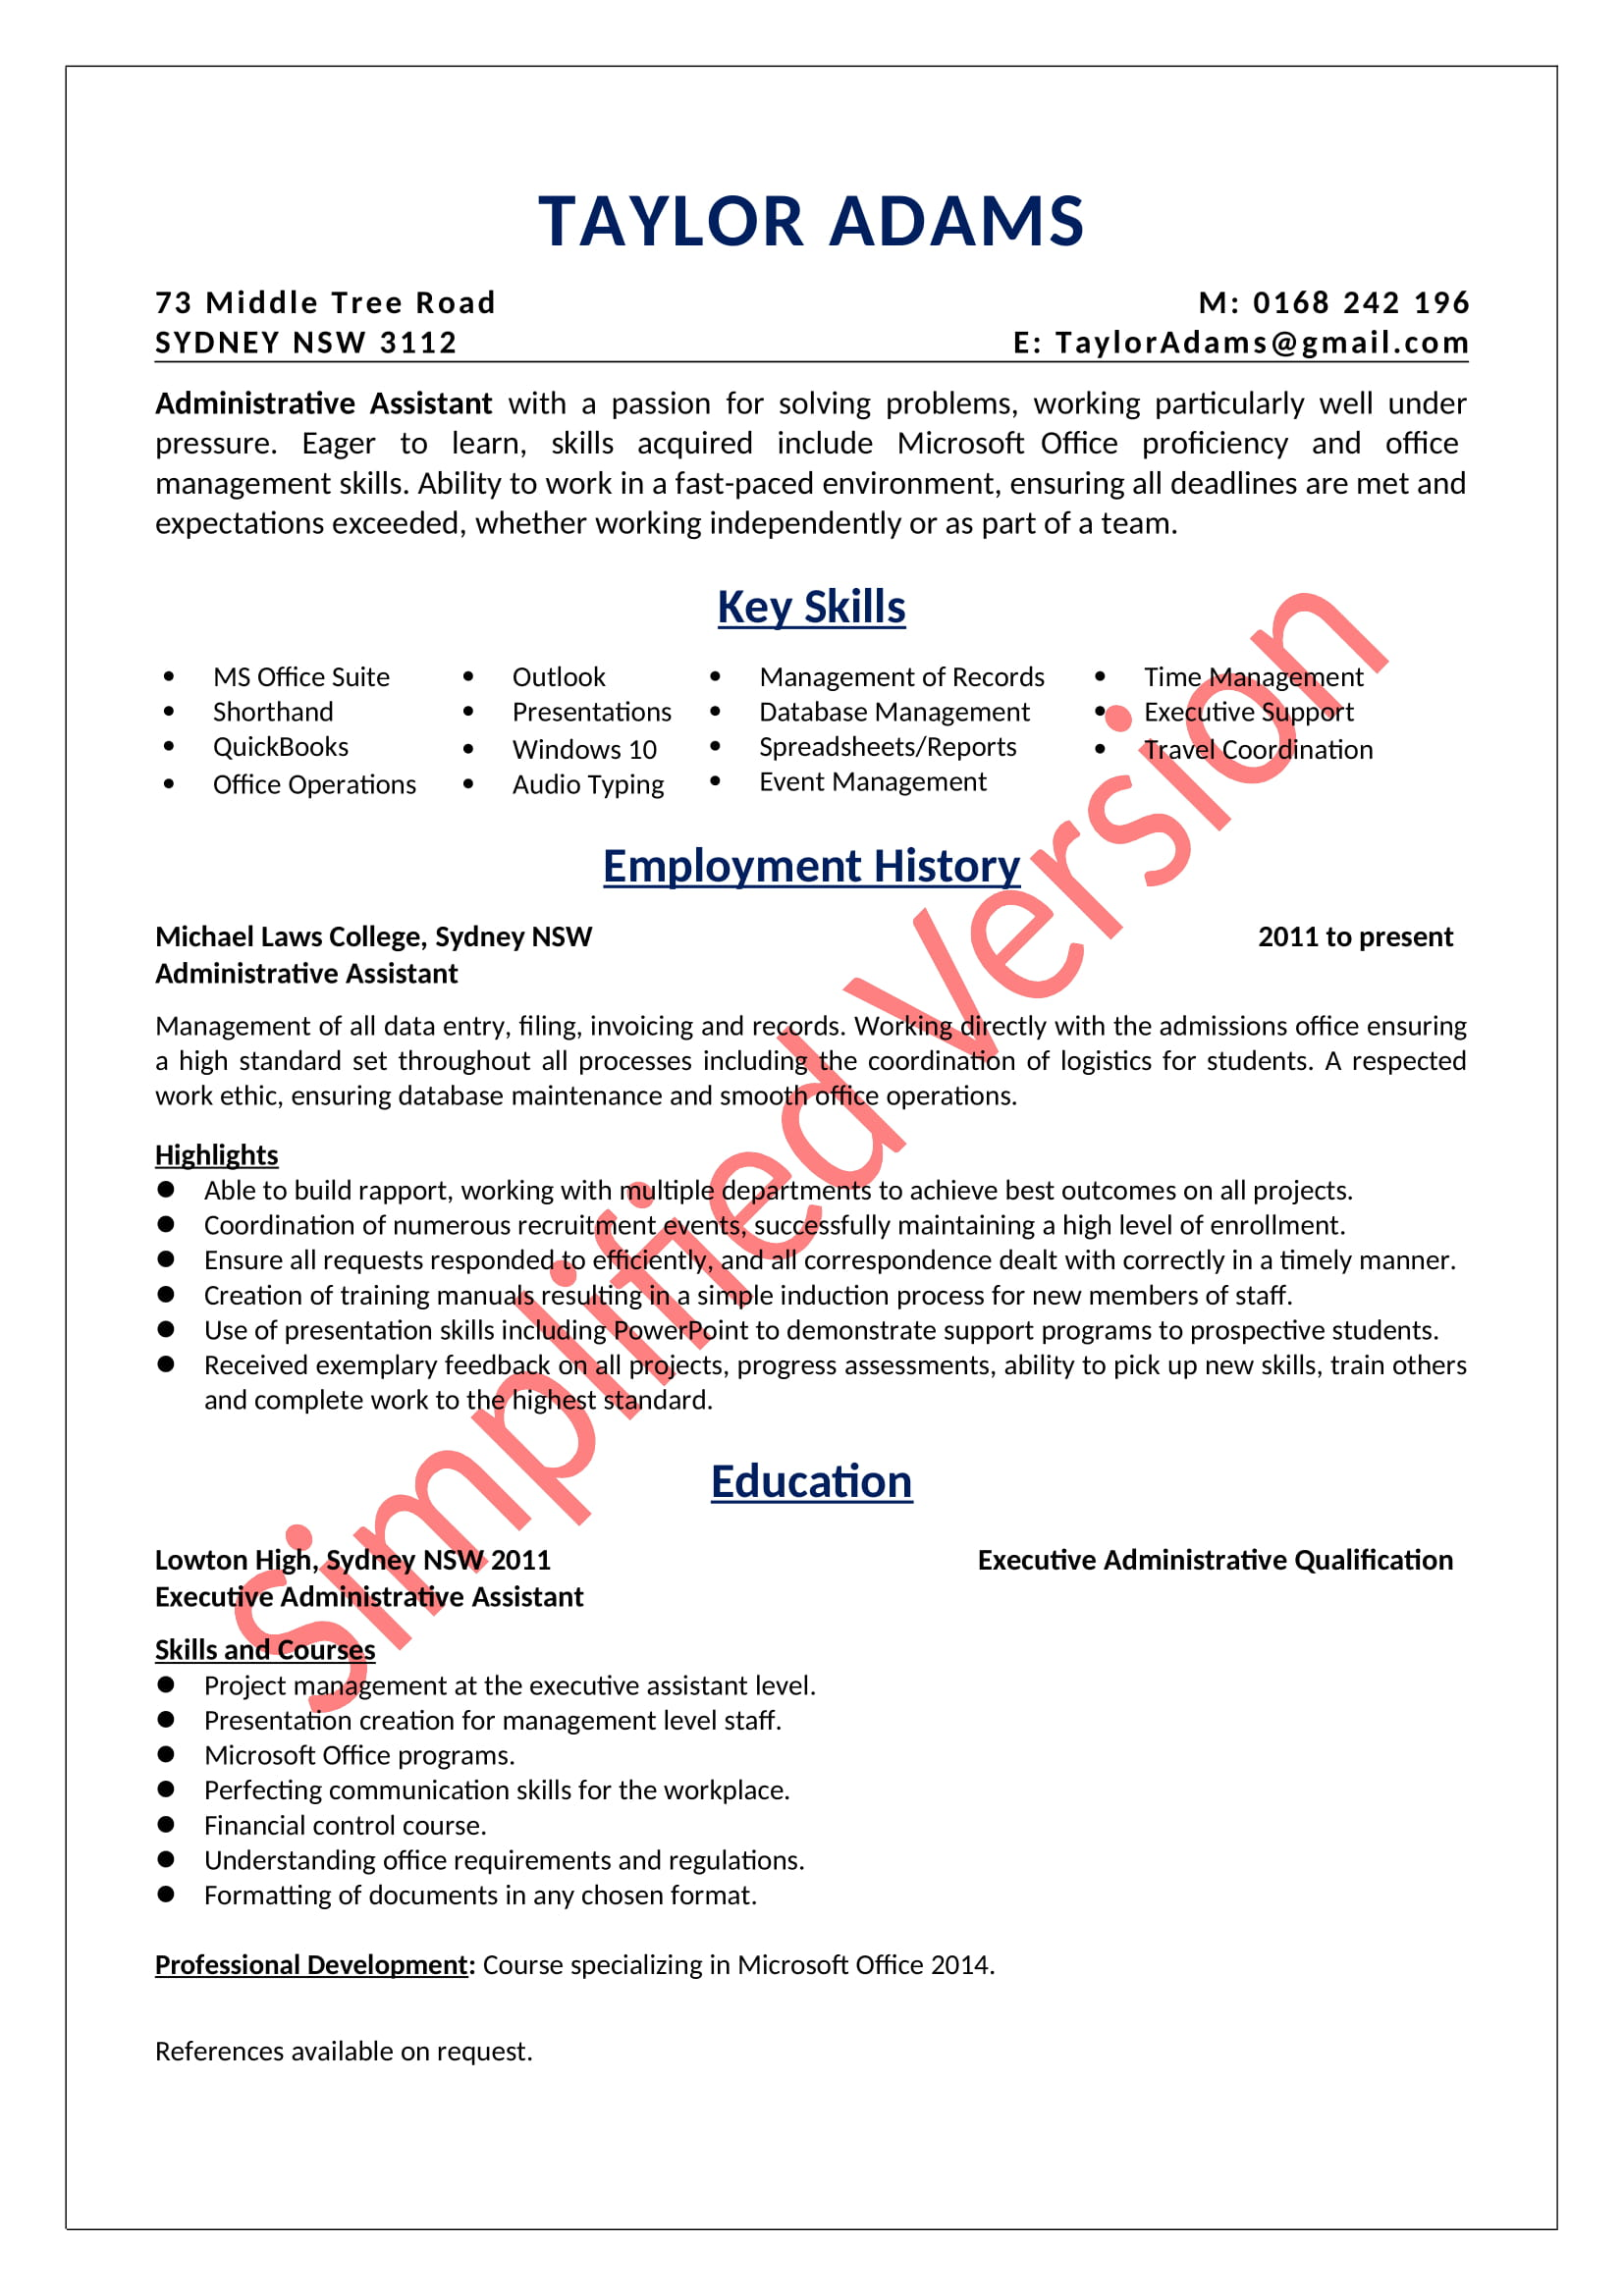 an administrative assistant resume sample absolutely free skills and abilities for sv Resume Skills And Abilities For Administrative Assistant Resume